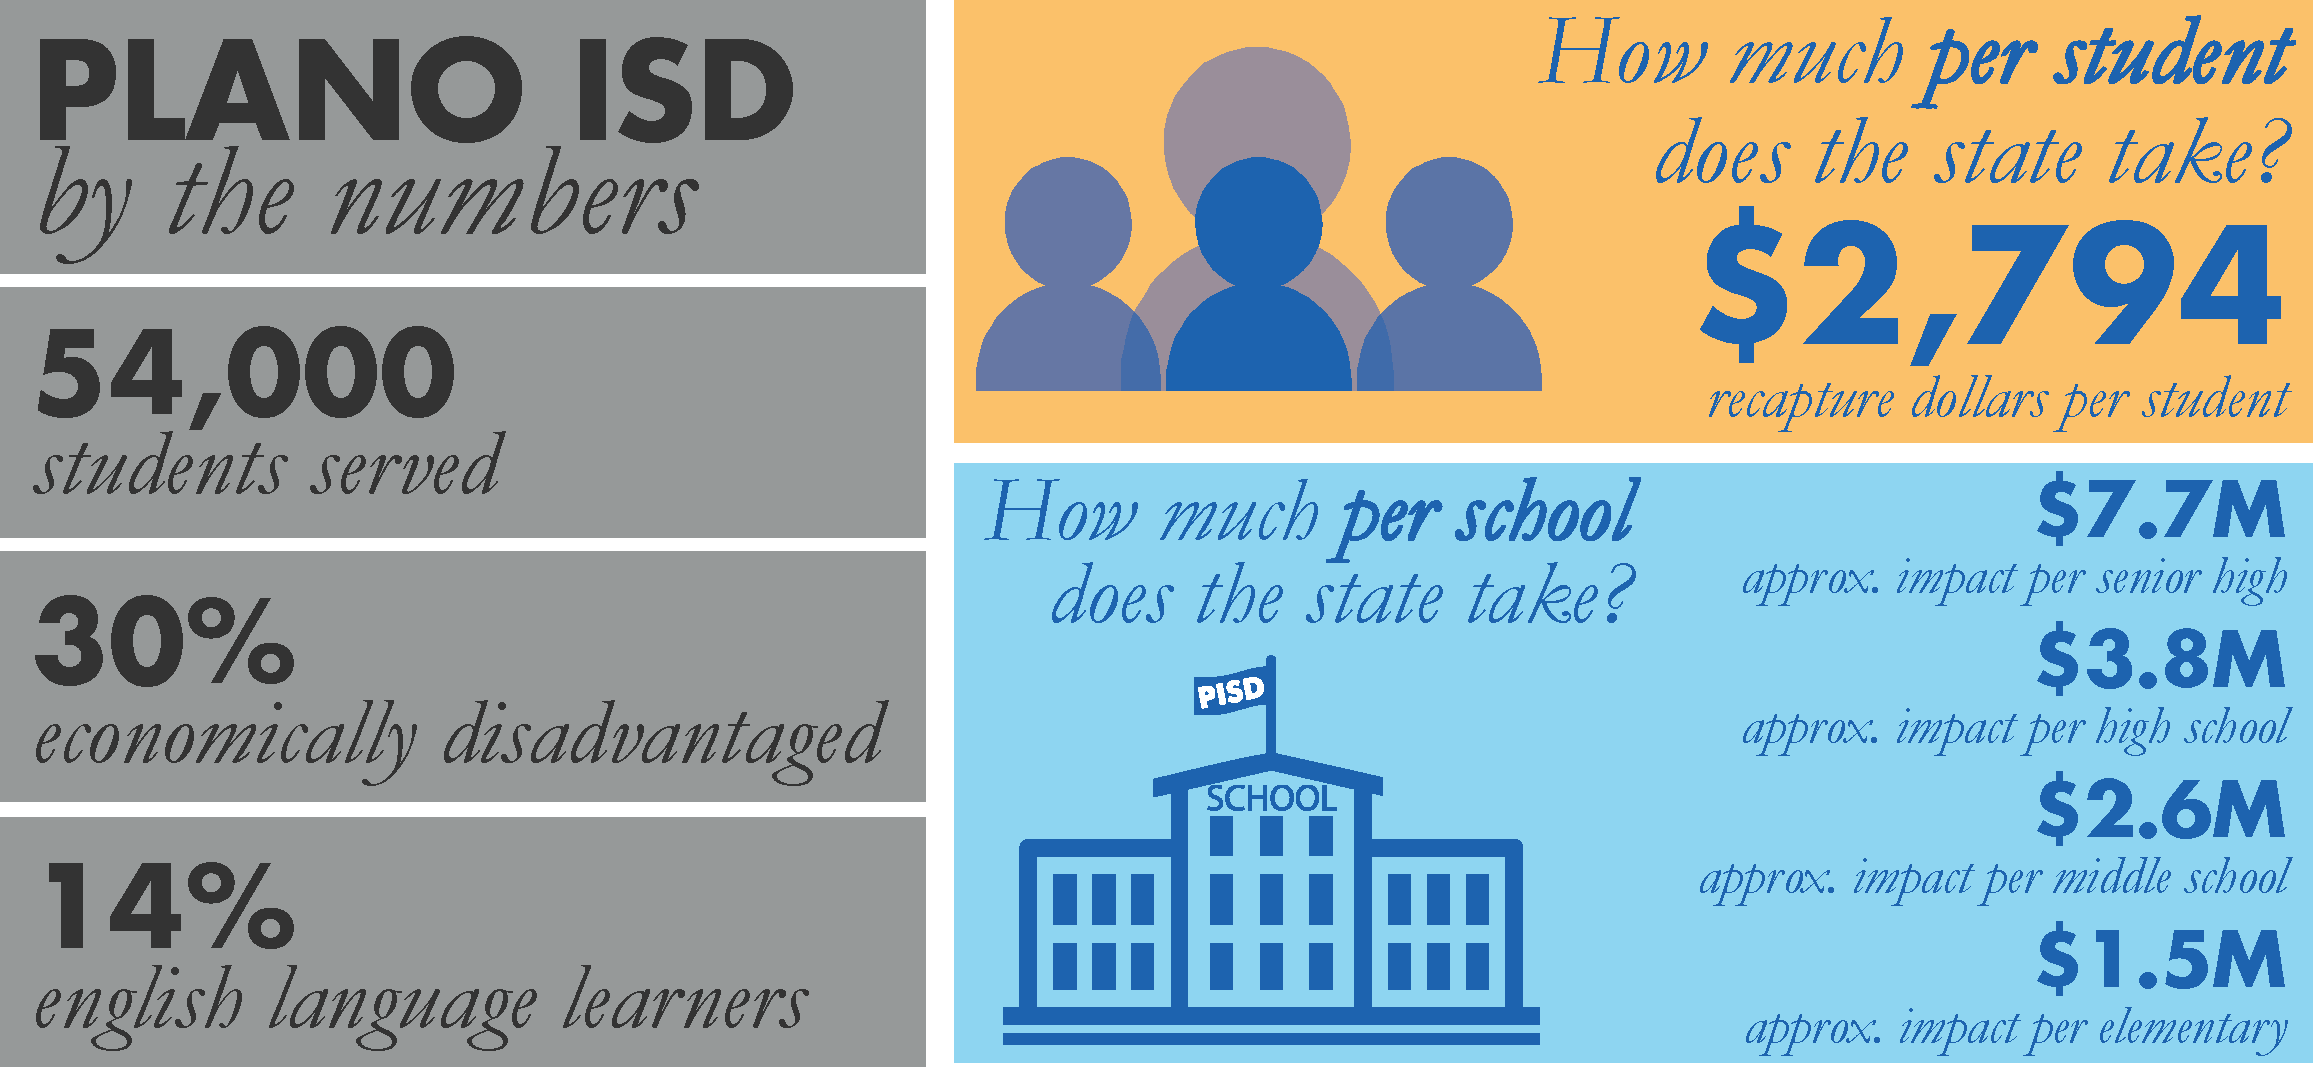 Plano ISD by the numbers: 54,000 students served; 30% economically disadvantaged; 14% english language learners. How much per school does the state take? $7.7M approx. impact per senior high; $3.8M approx. impact per high school; $2.6M approx. impact per middle school; $1.5M approx. impact per elementary.